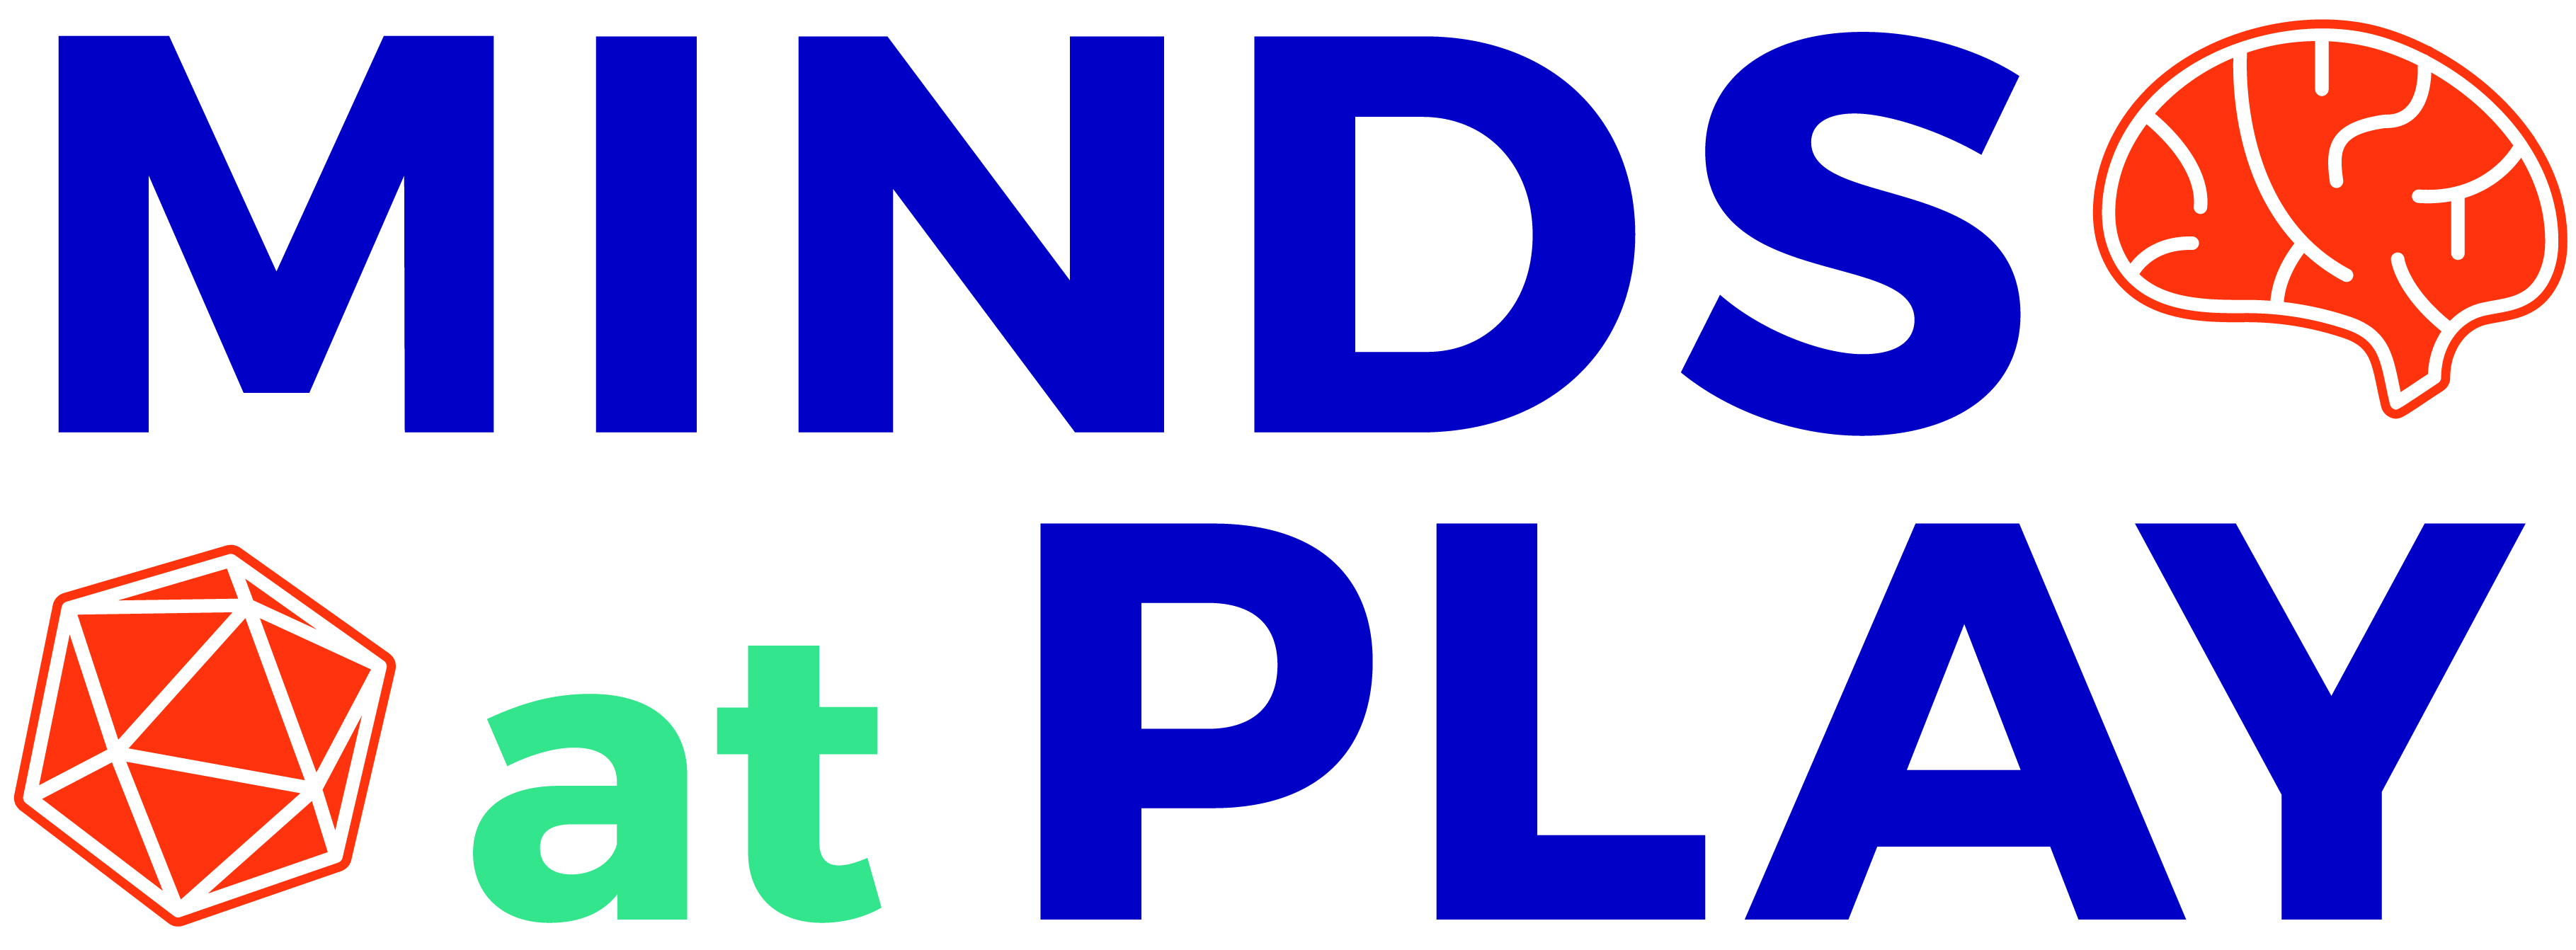 Minds at Play logo